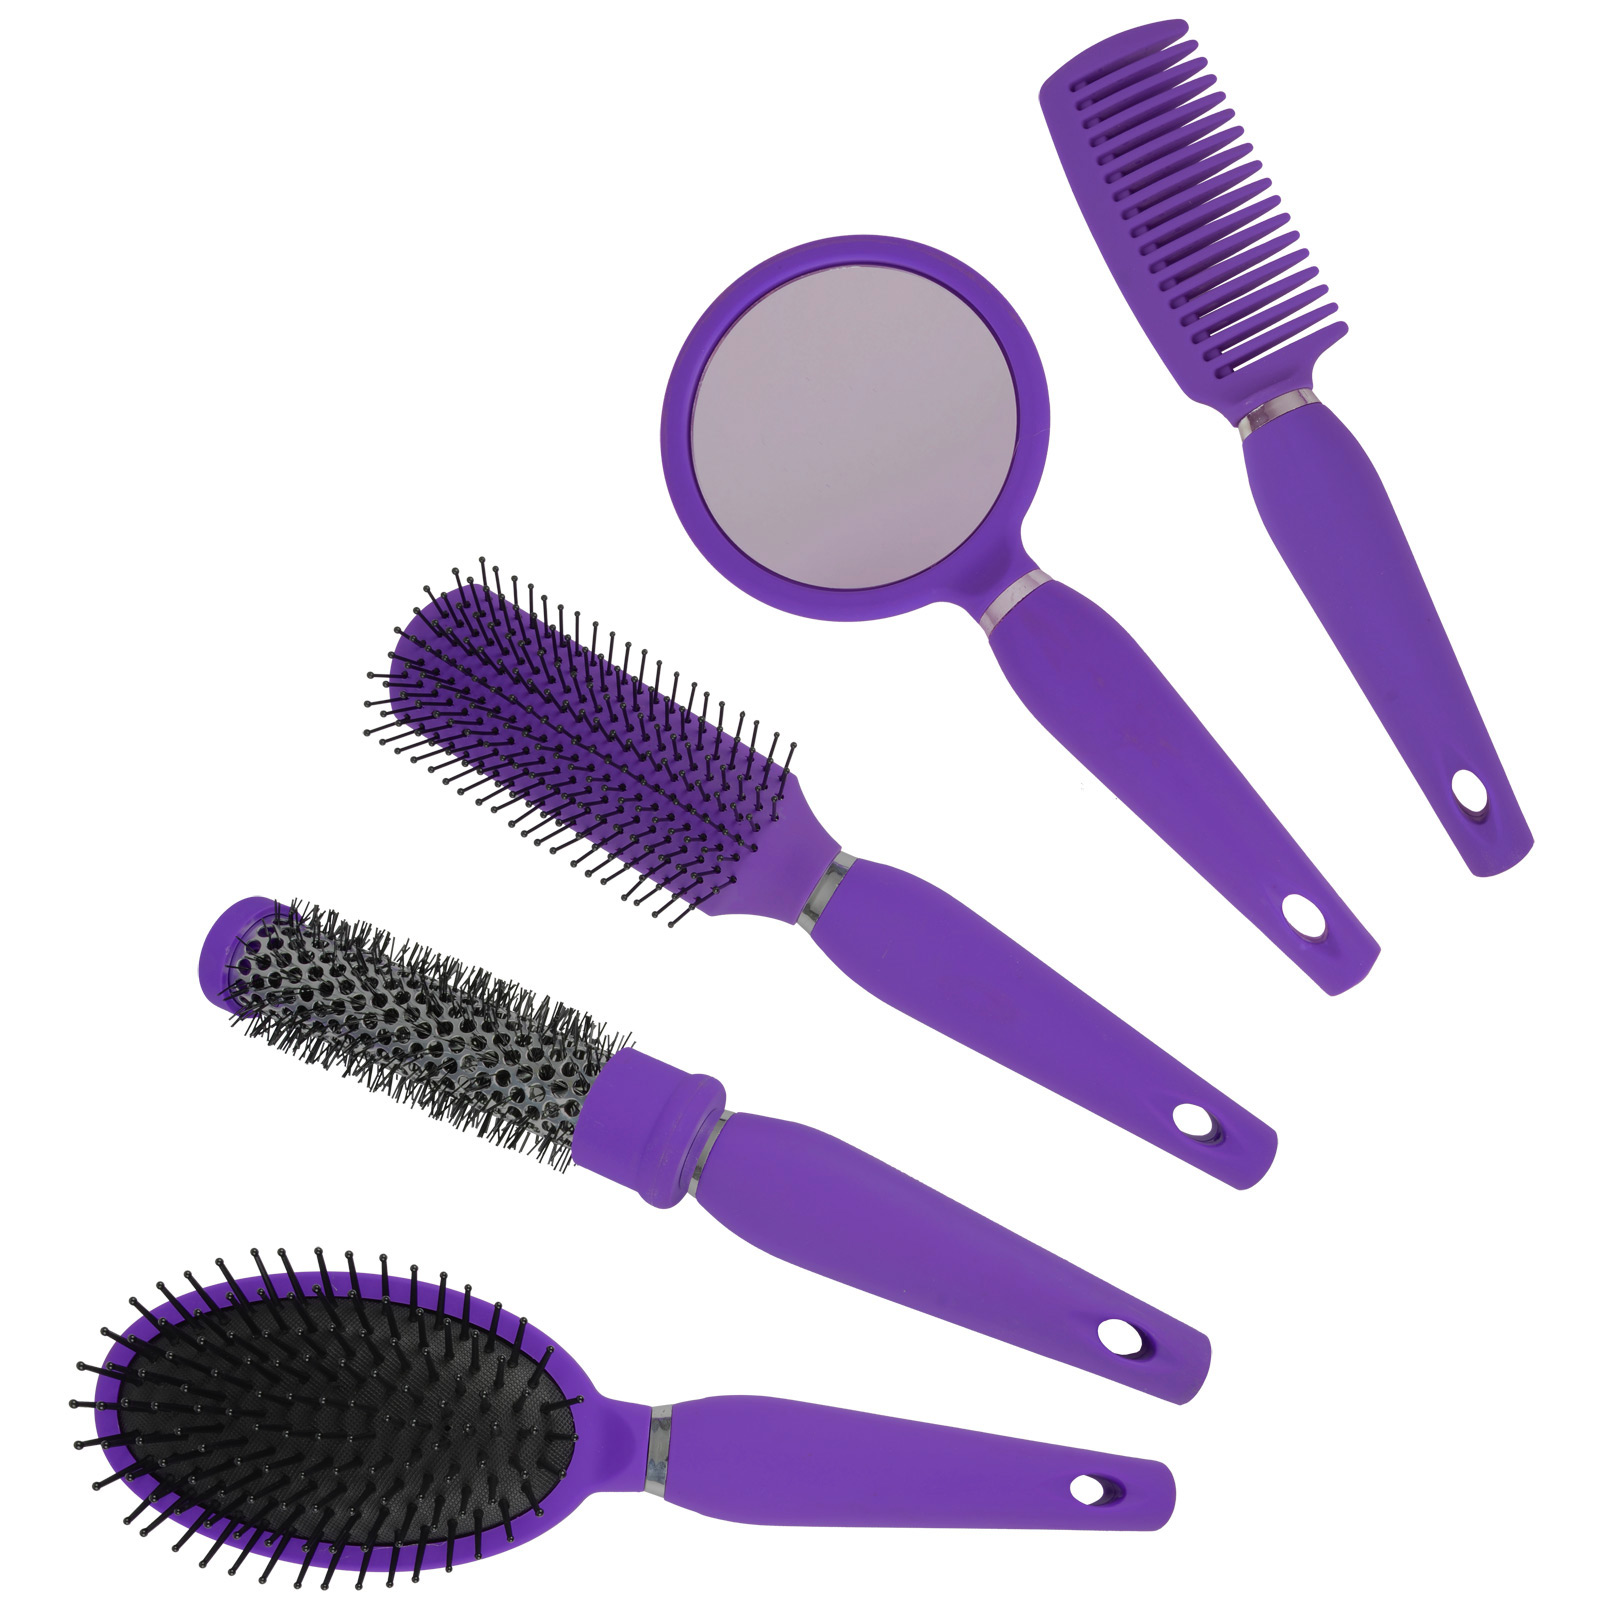 Salon-Styler-5-Piece-Quality-Hair-Care-Hair-Brush-Gift-Set-With-Mirror-amp-Stand